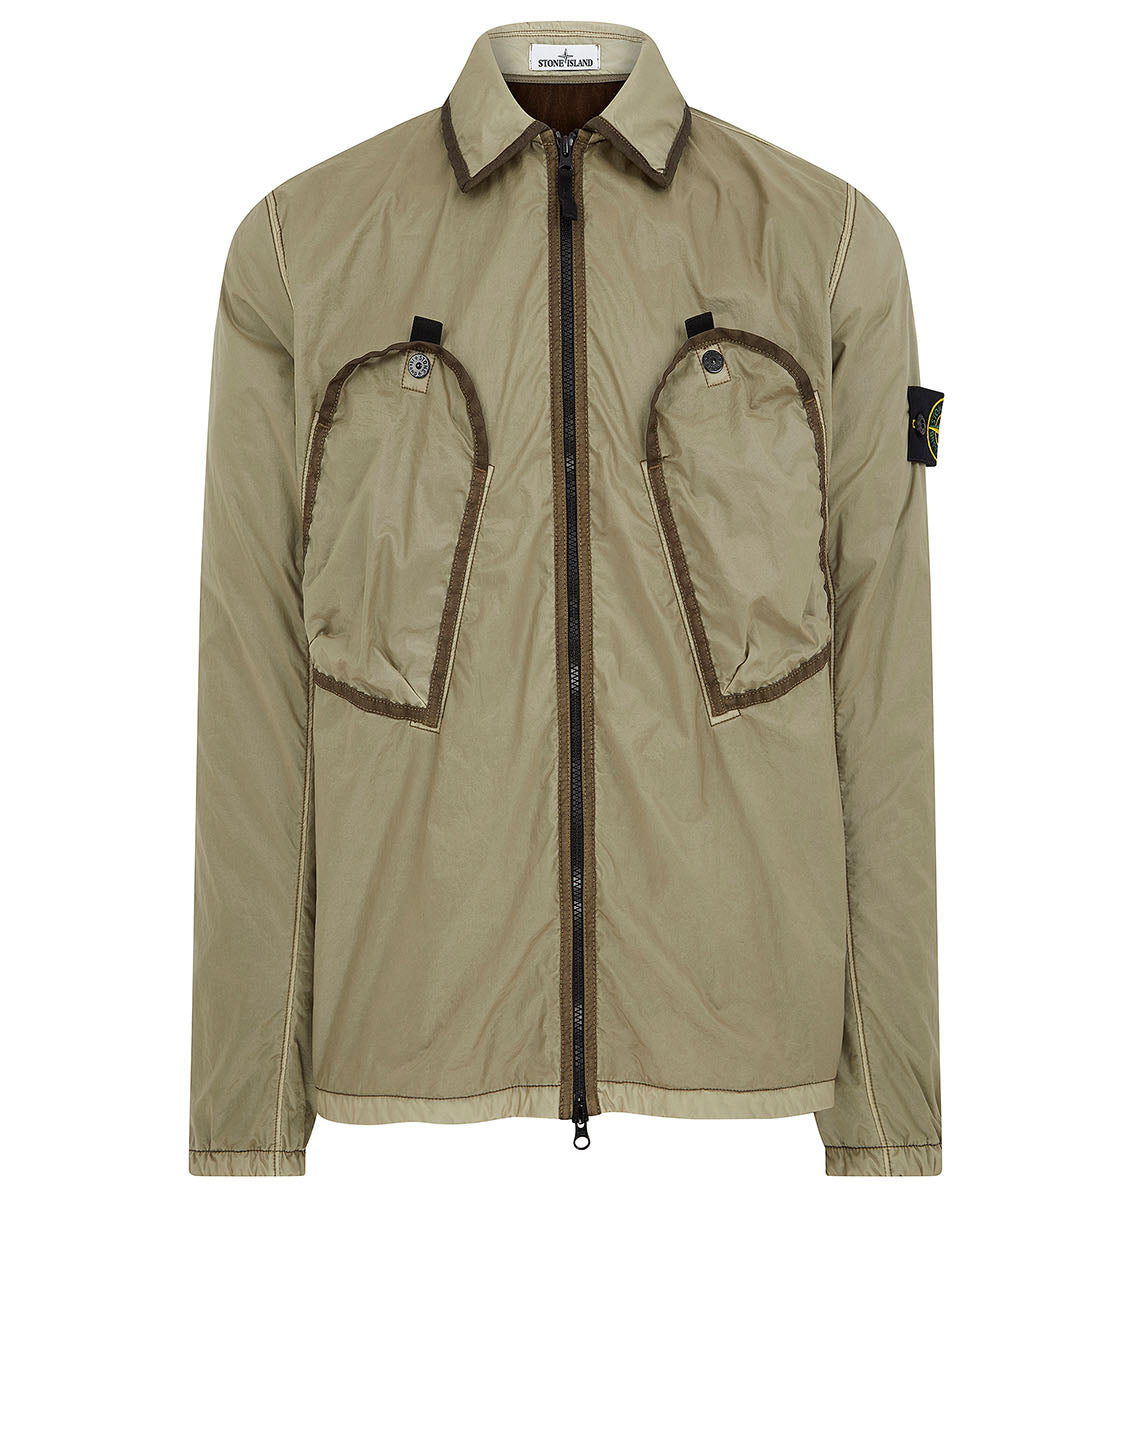 11435 Lamy Flock Jacket in Olive